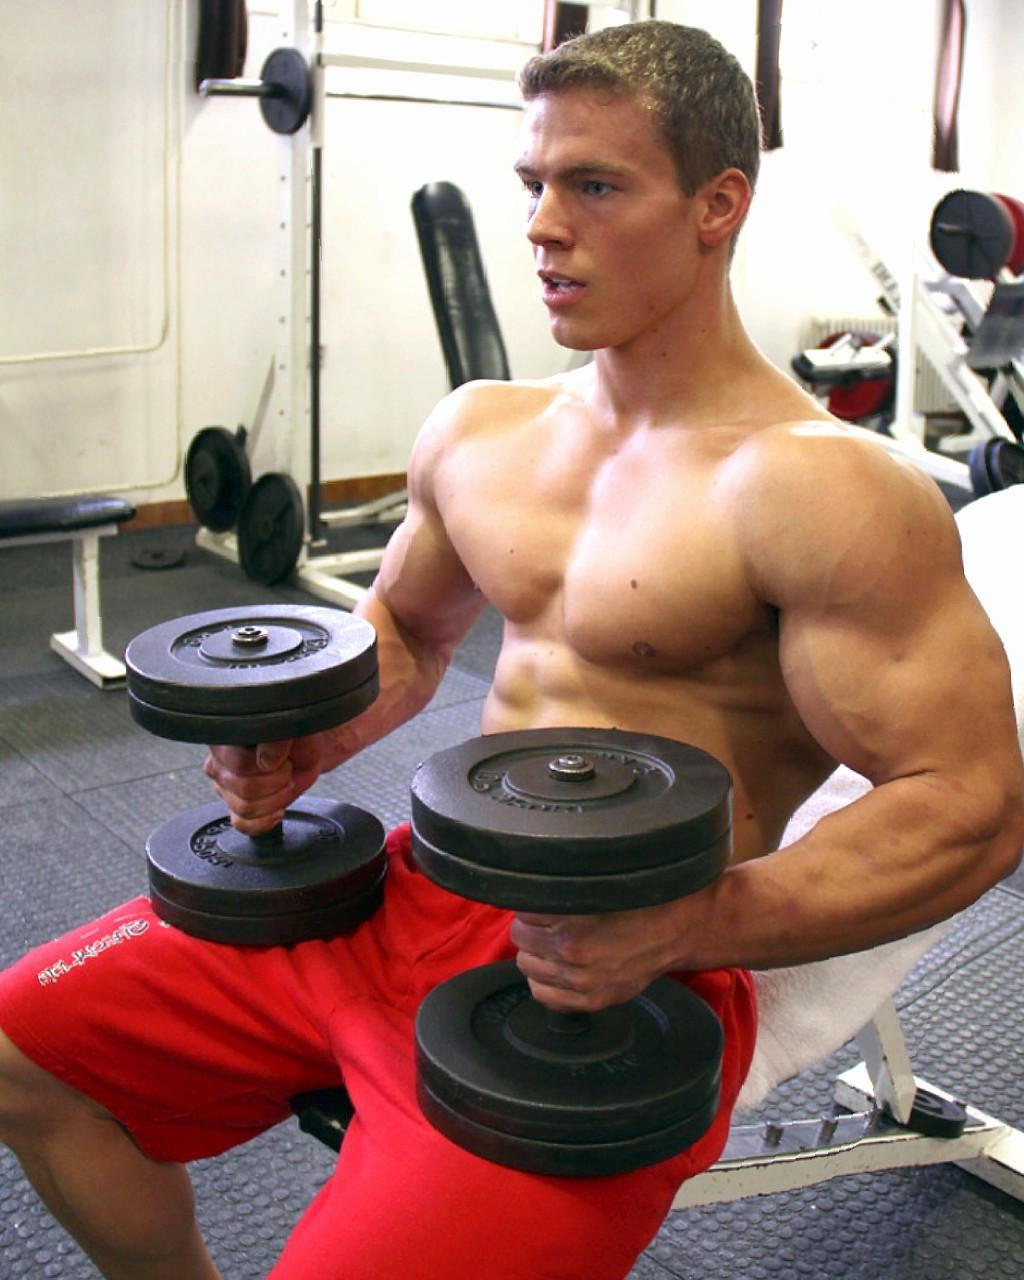 strong-sexy-muscle-blond-bro-gym-workout-hunk-biceps